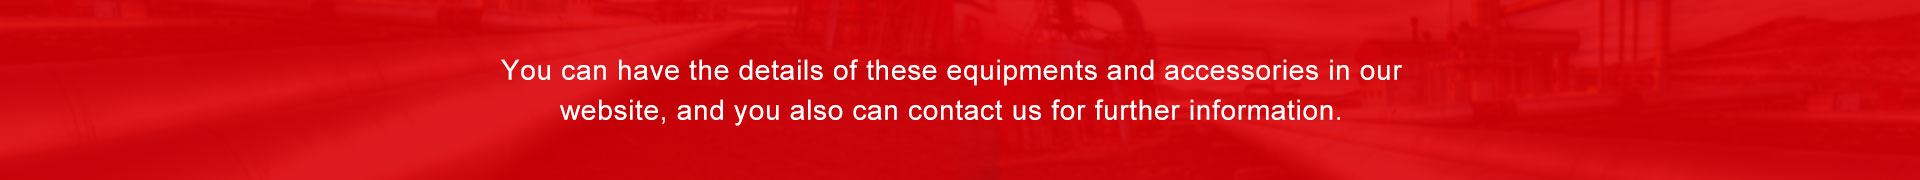 Dandong Flaw Detector Equipment Co., Ltd.